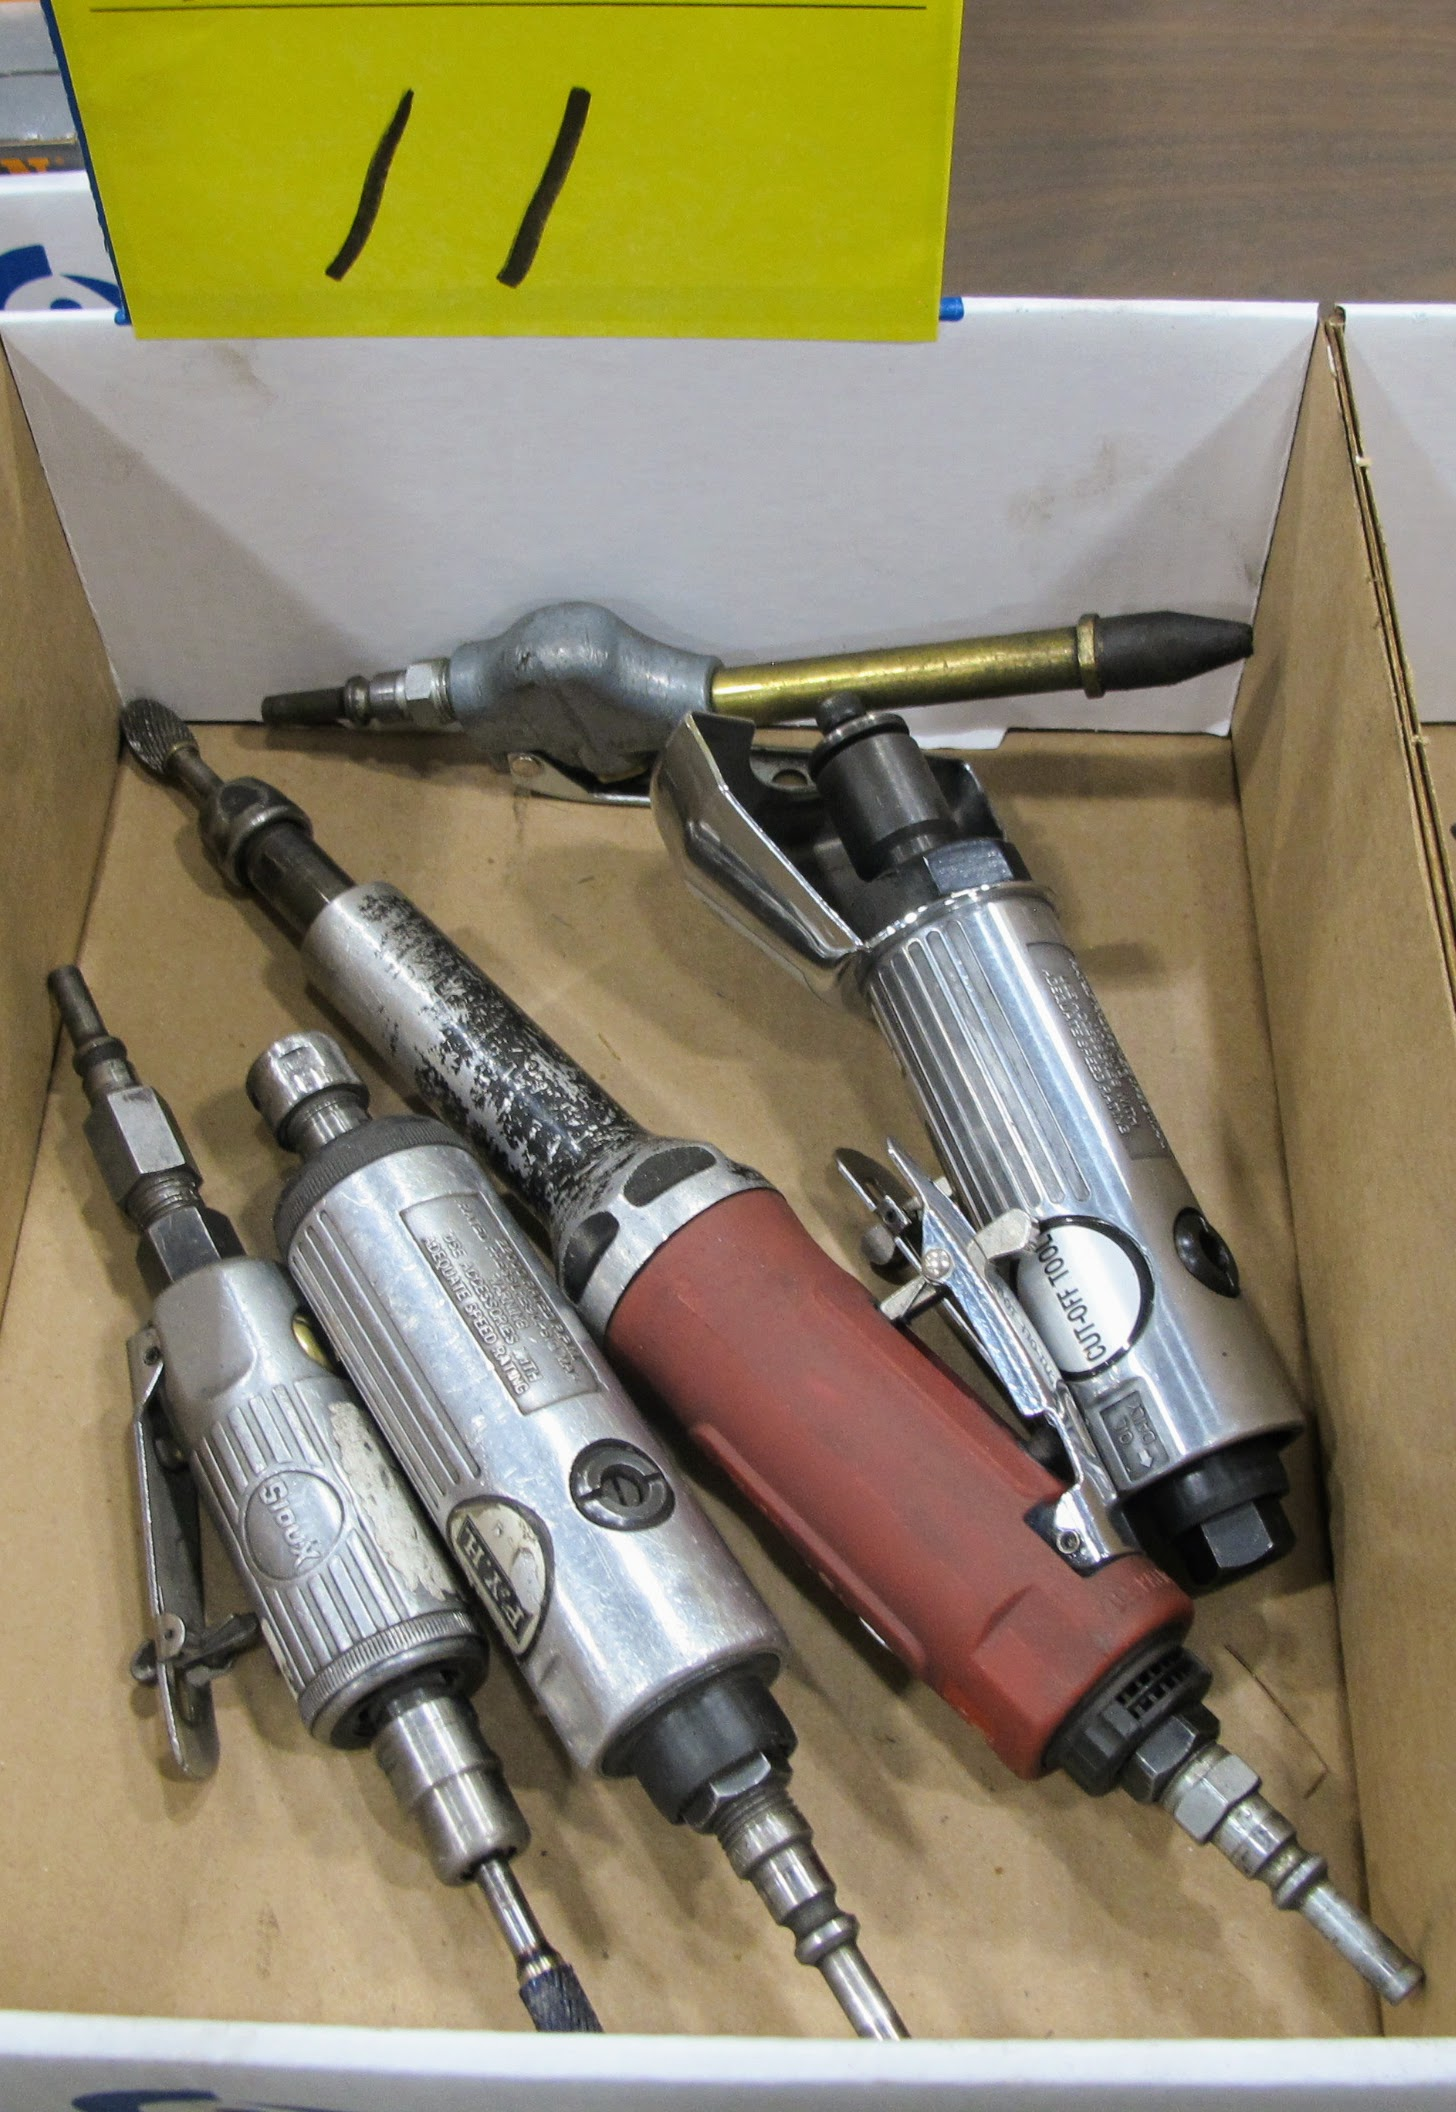 "LOT OF 1 BOX OF SIOUX, PYH, POWERFIST PNEUMATIC TOOLS (TIP GRINDER, DRIVERS, 3"" CUTOFF TOOL)"